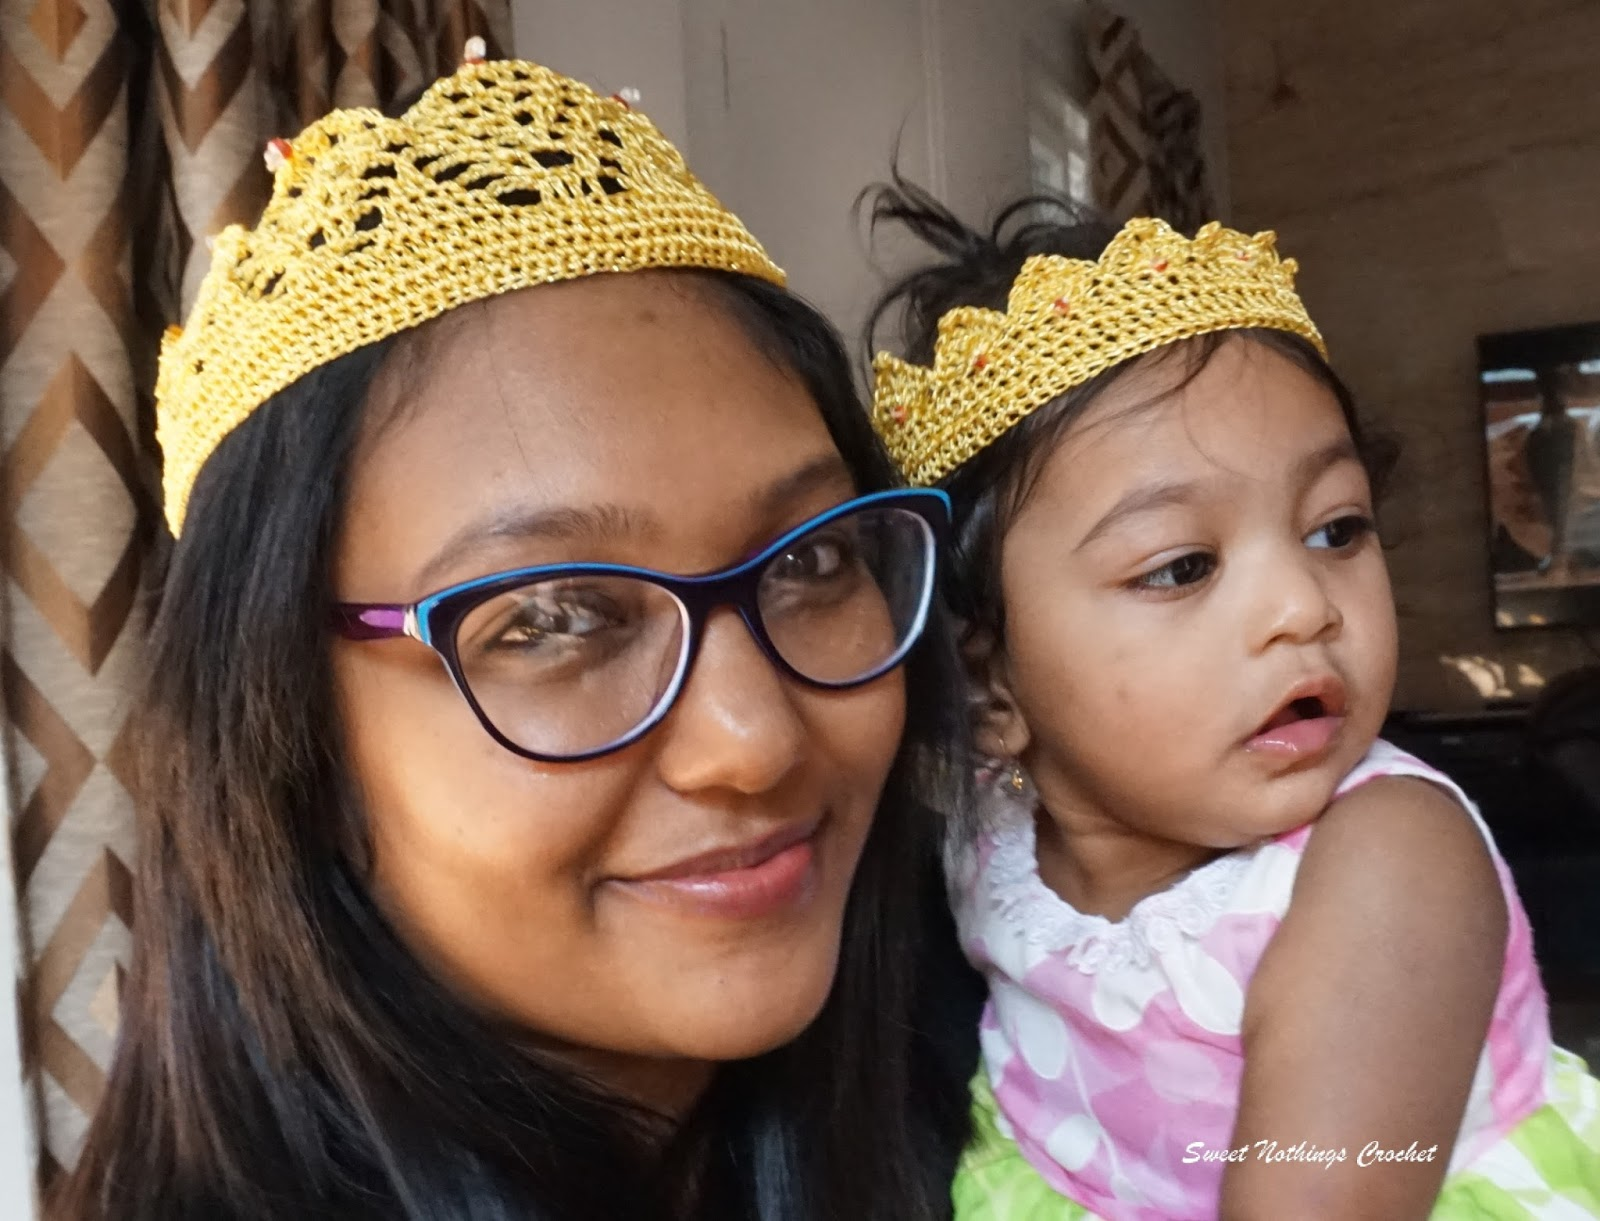 Sweet Nothings Crochet: PRINCESS CROWNS for mum and baby